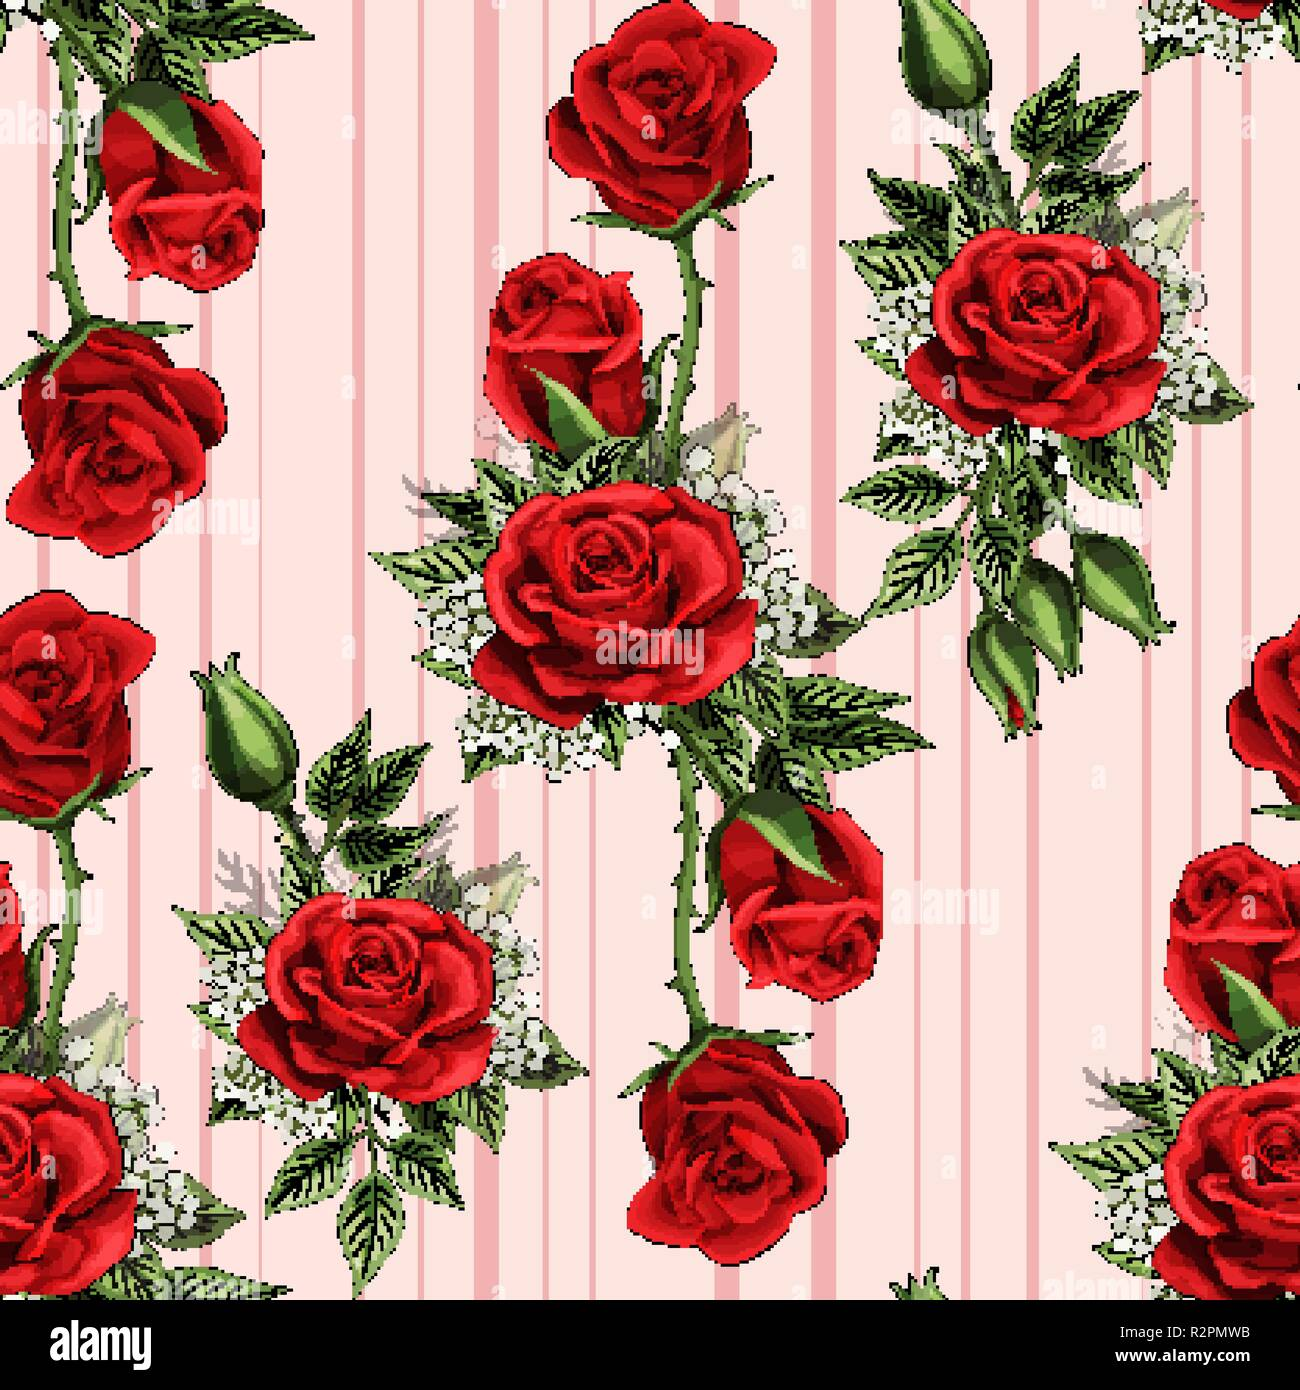 Red Rose Flower Bouquet Spreads Creeper Elements Seamless